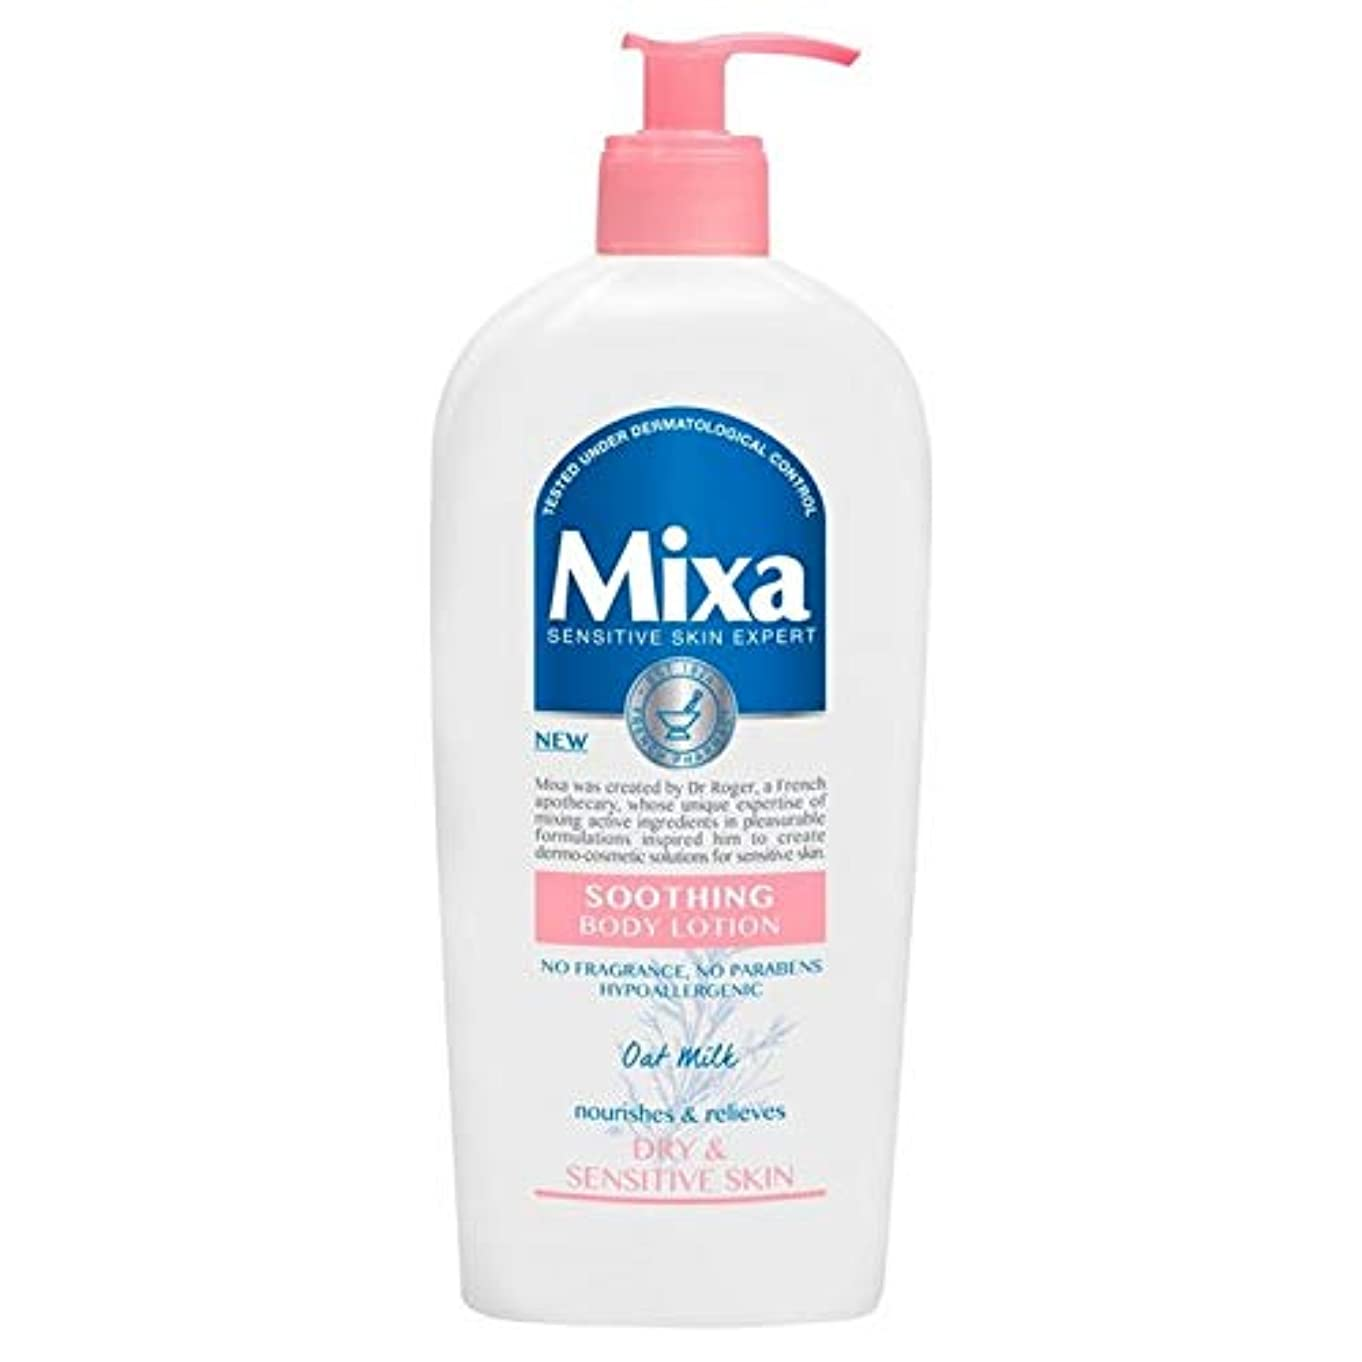 [Mixa] Mixaなだめるボディローション400ミリリットル - Mixa Soothing Body Lotion 400ml [並行輸入品]